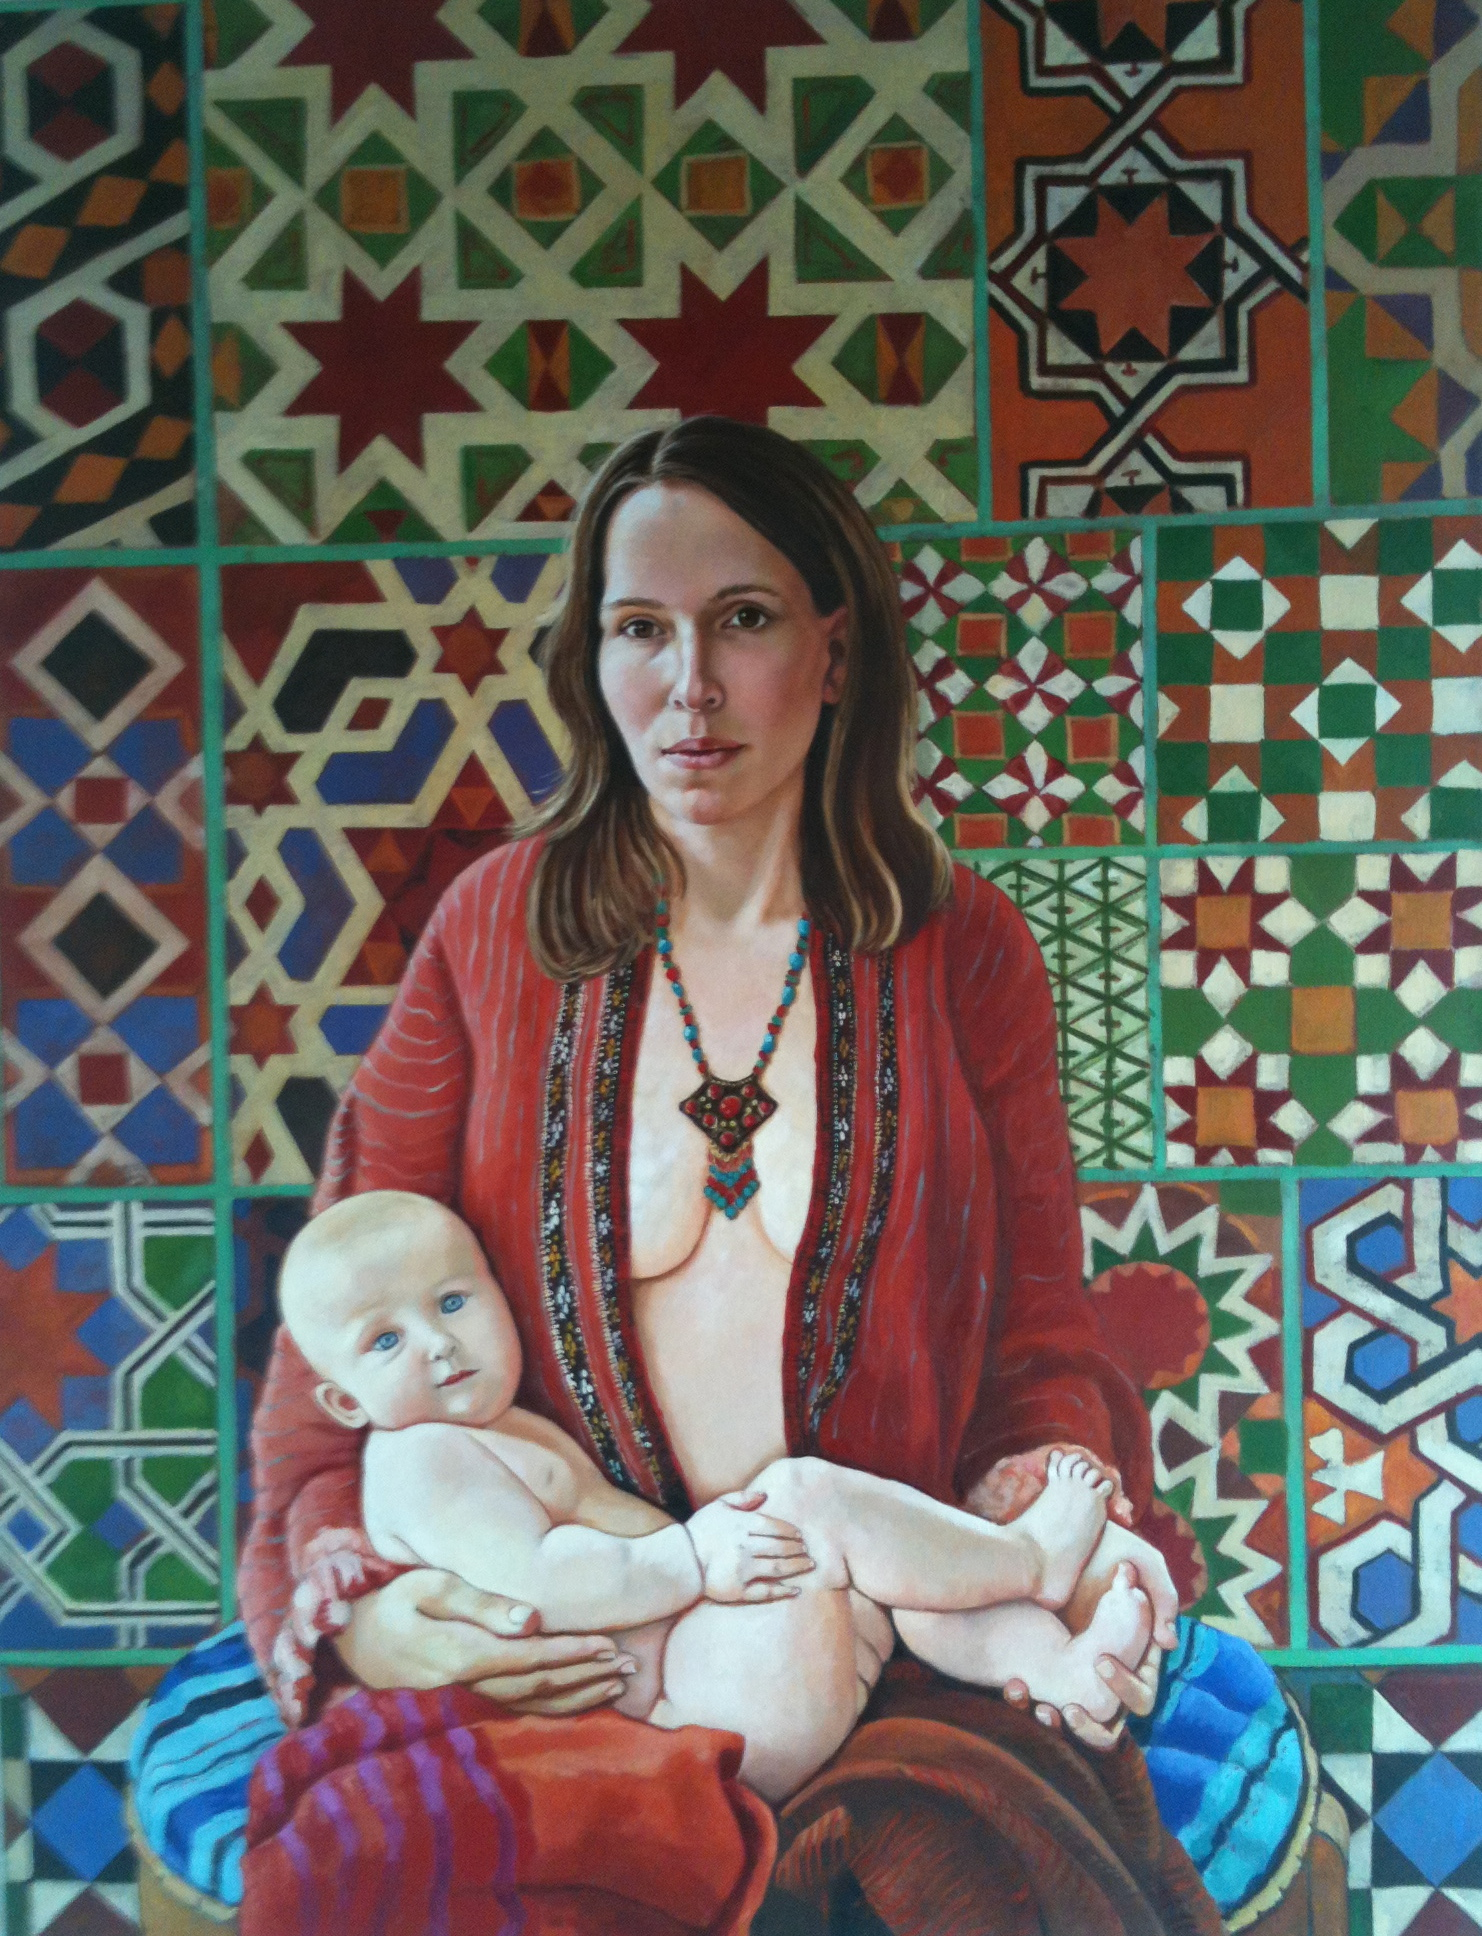 Katerina with Klara, oil on linen 97x127 cm